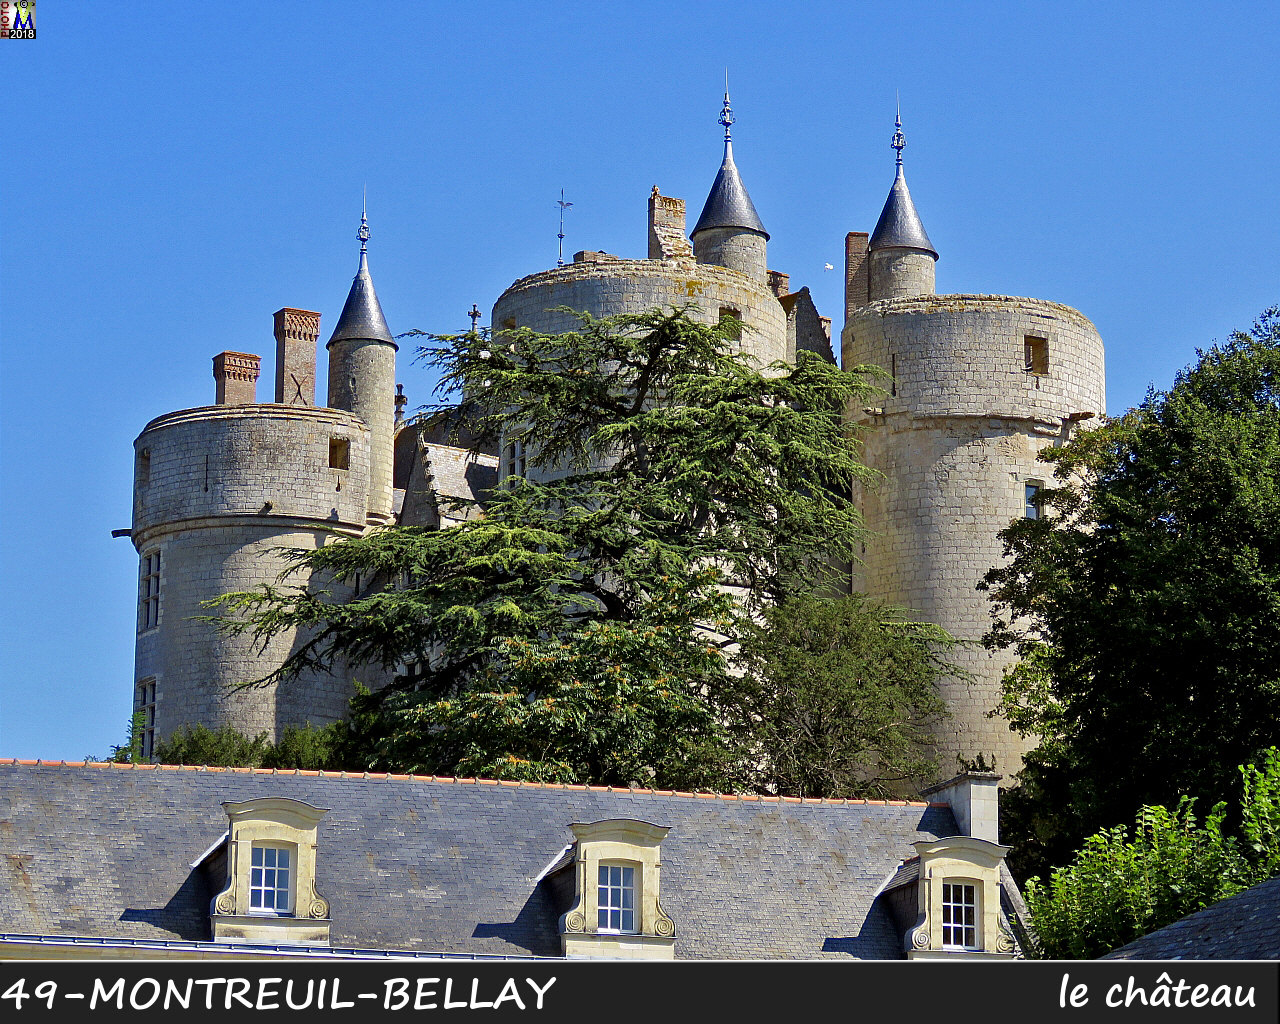 49MONTREUIL-BELLAY_chateau_1020.jpg